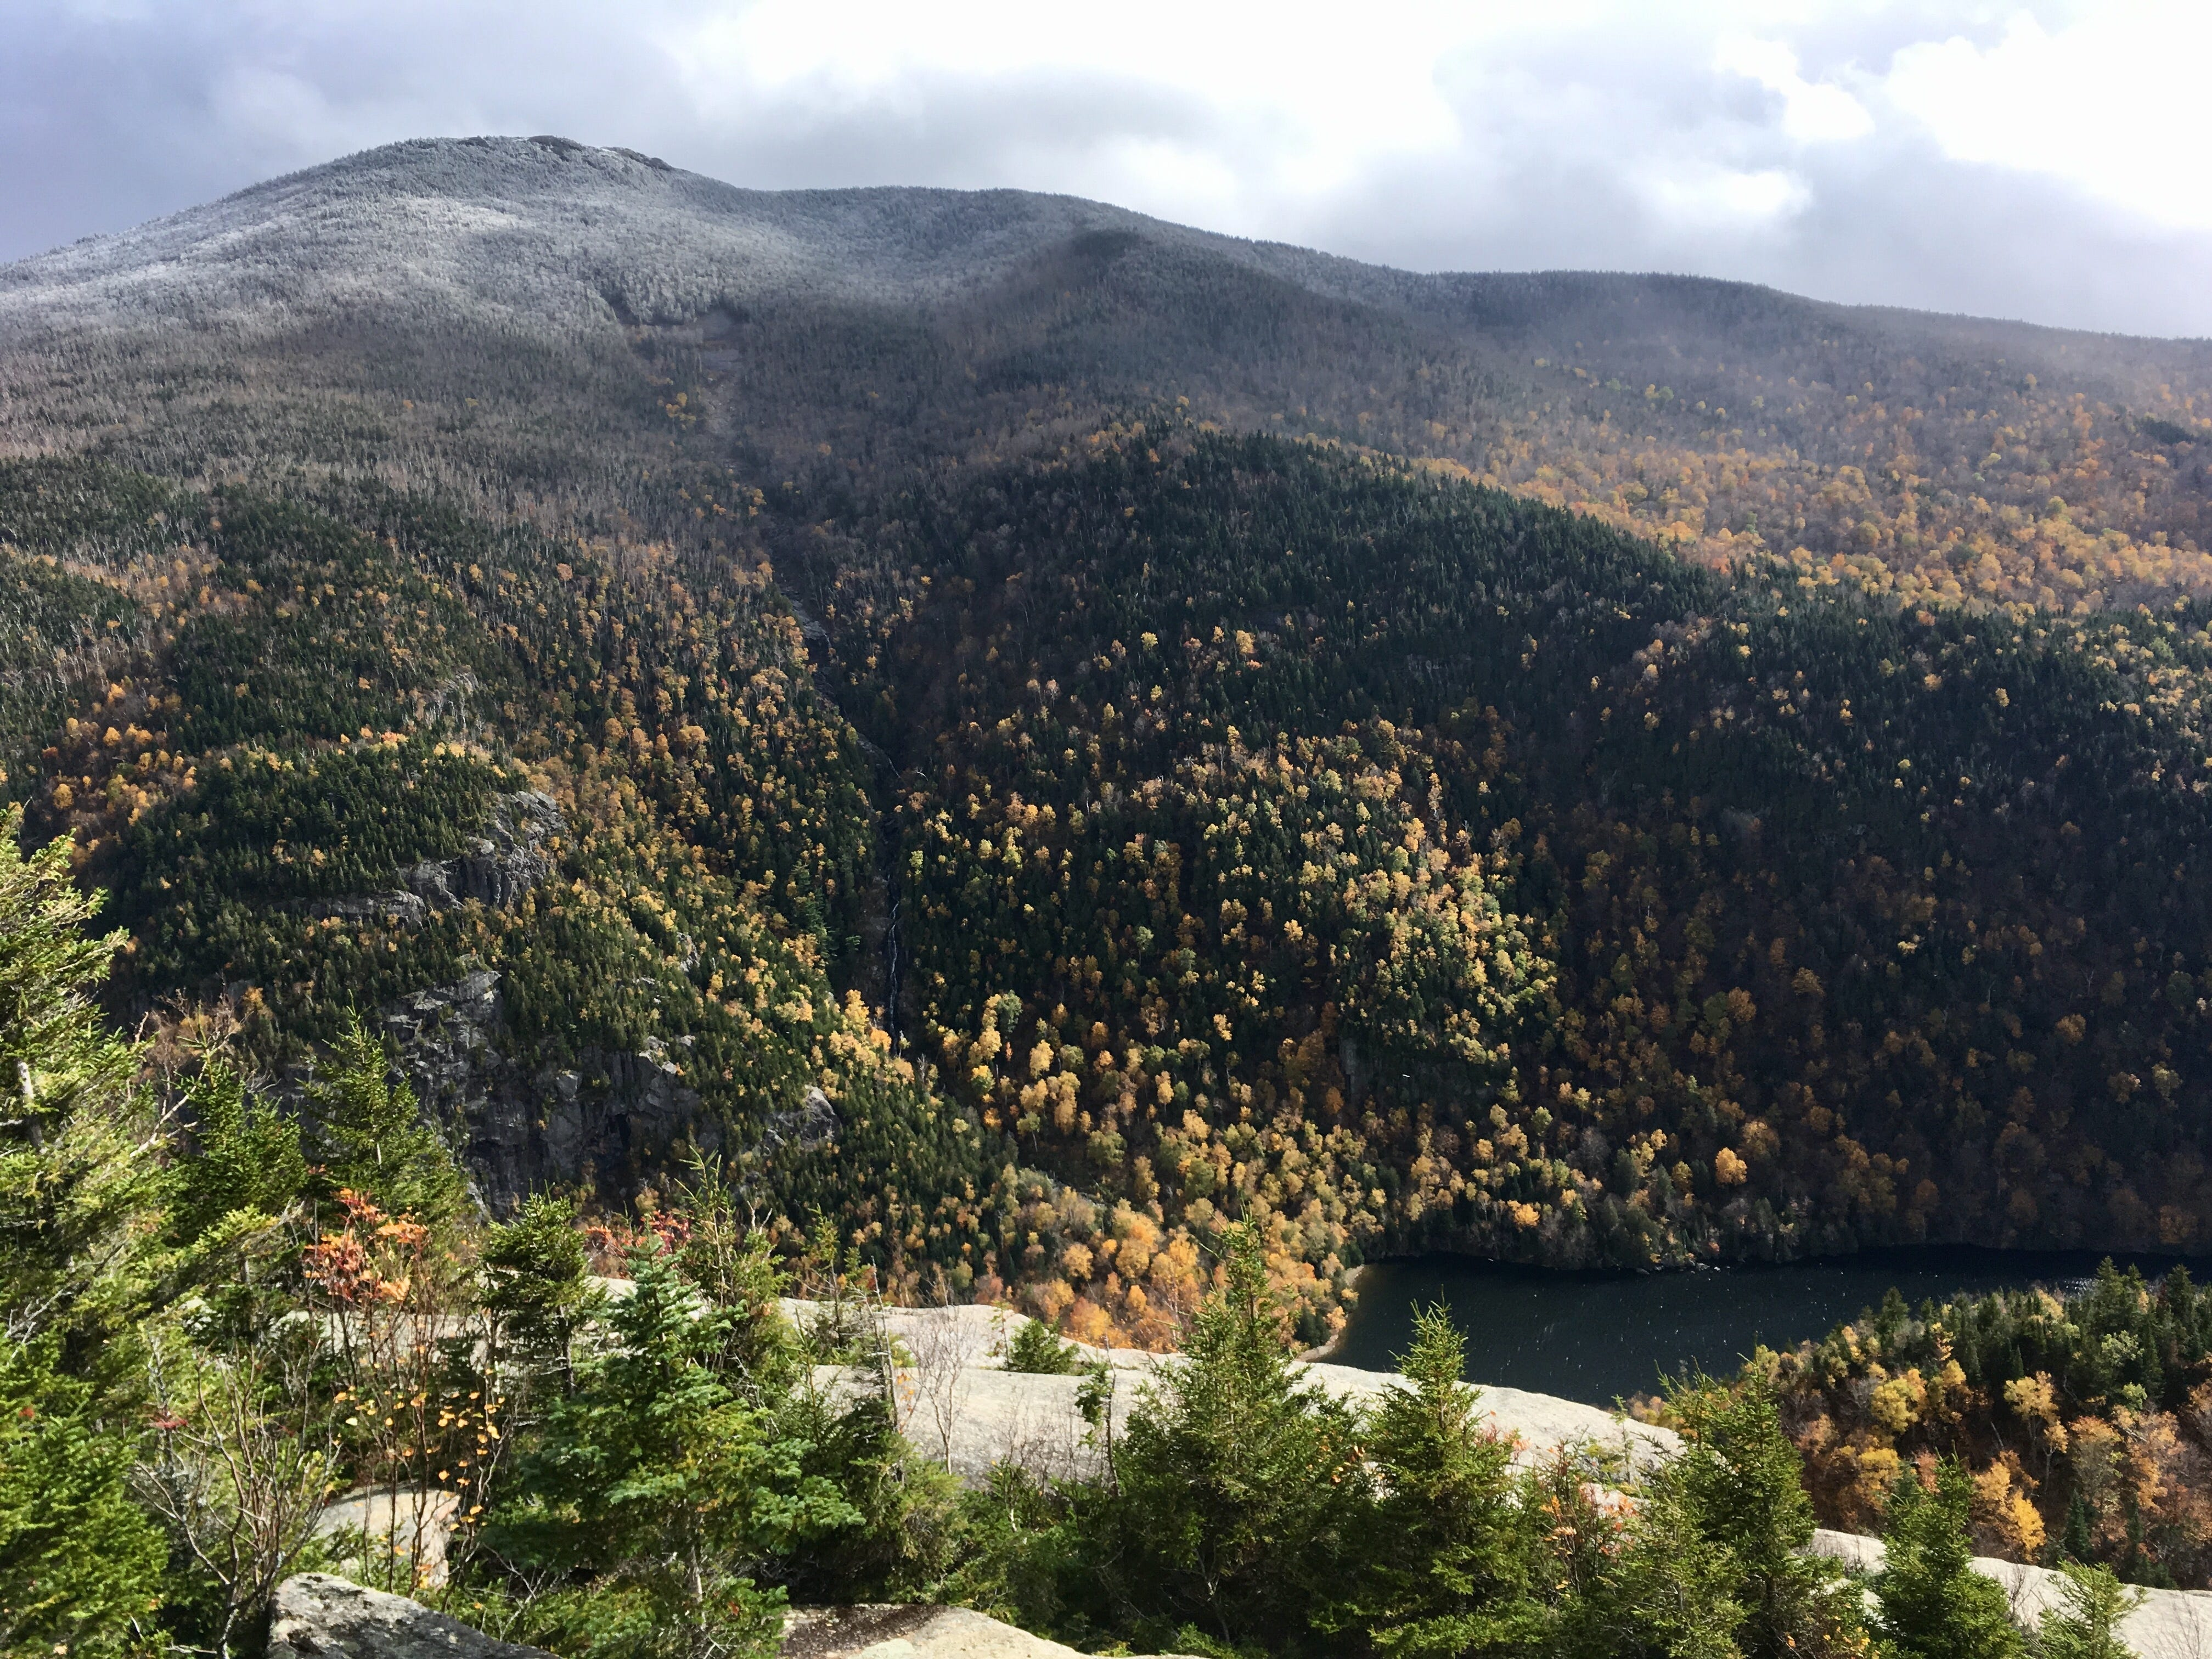 The summit of Cascade Mountain is dusted with snow on Oct. 13, 2018. Seen from the Balanced Rocks on Pitchoff Mountain.